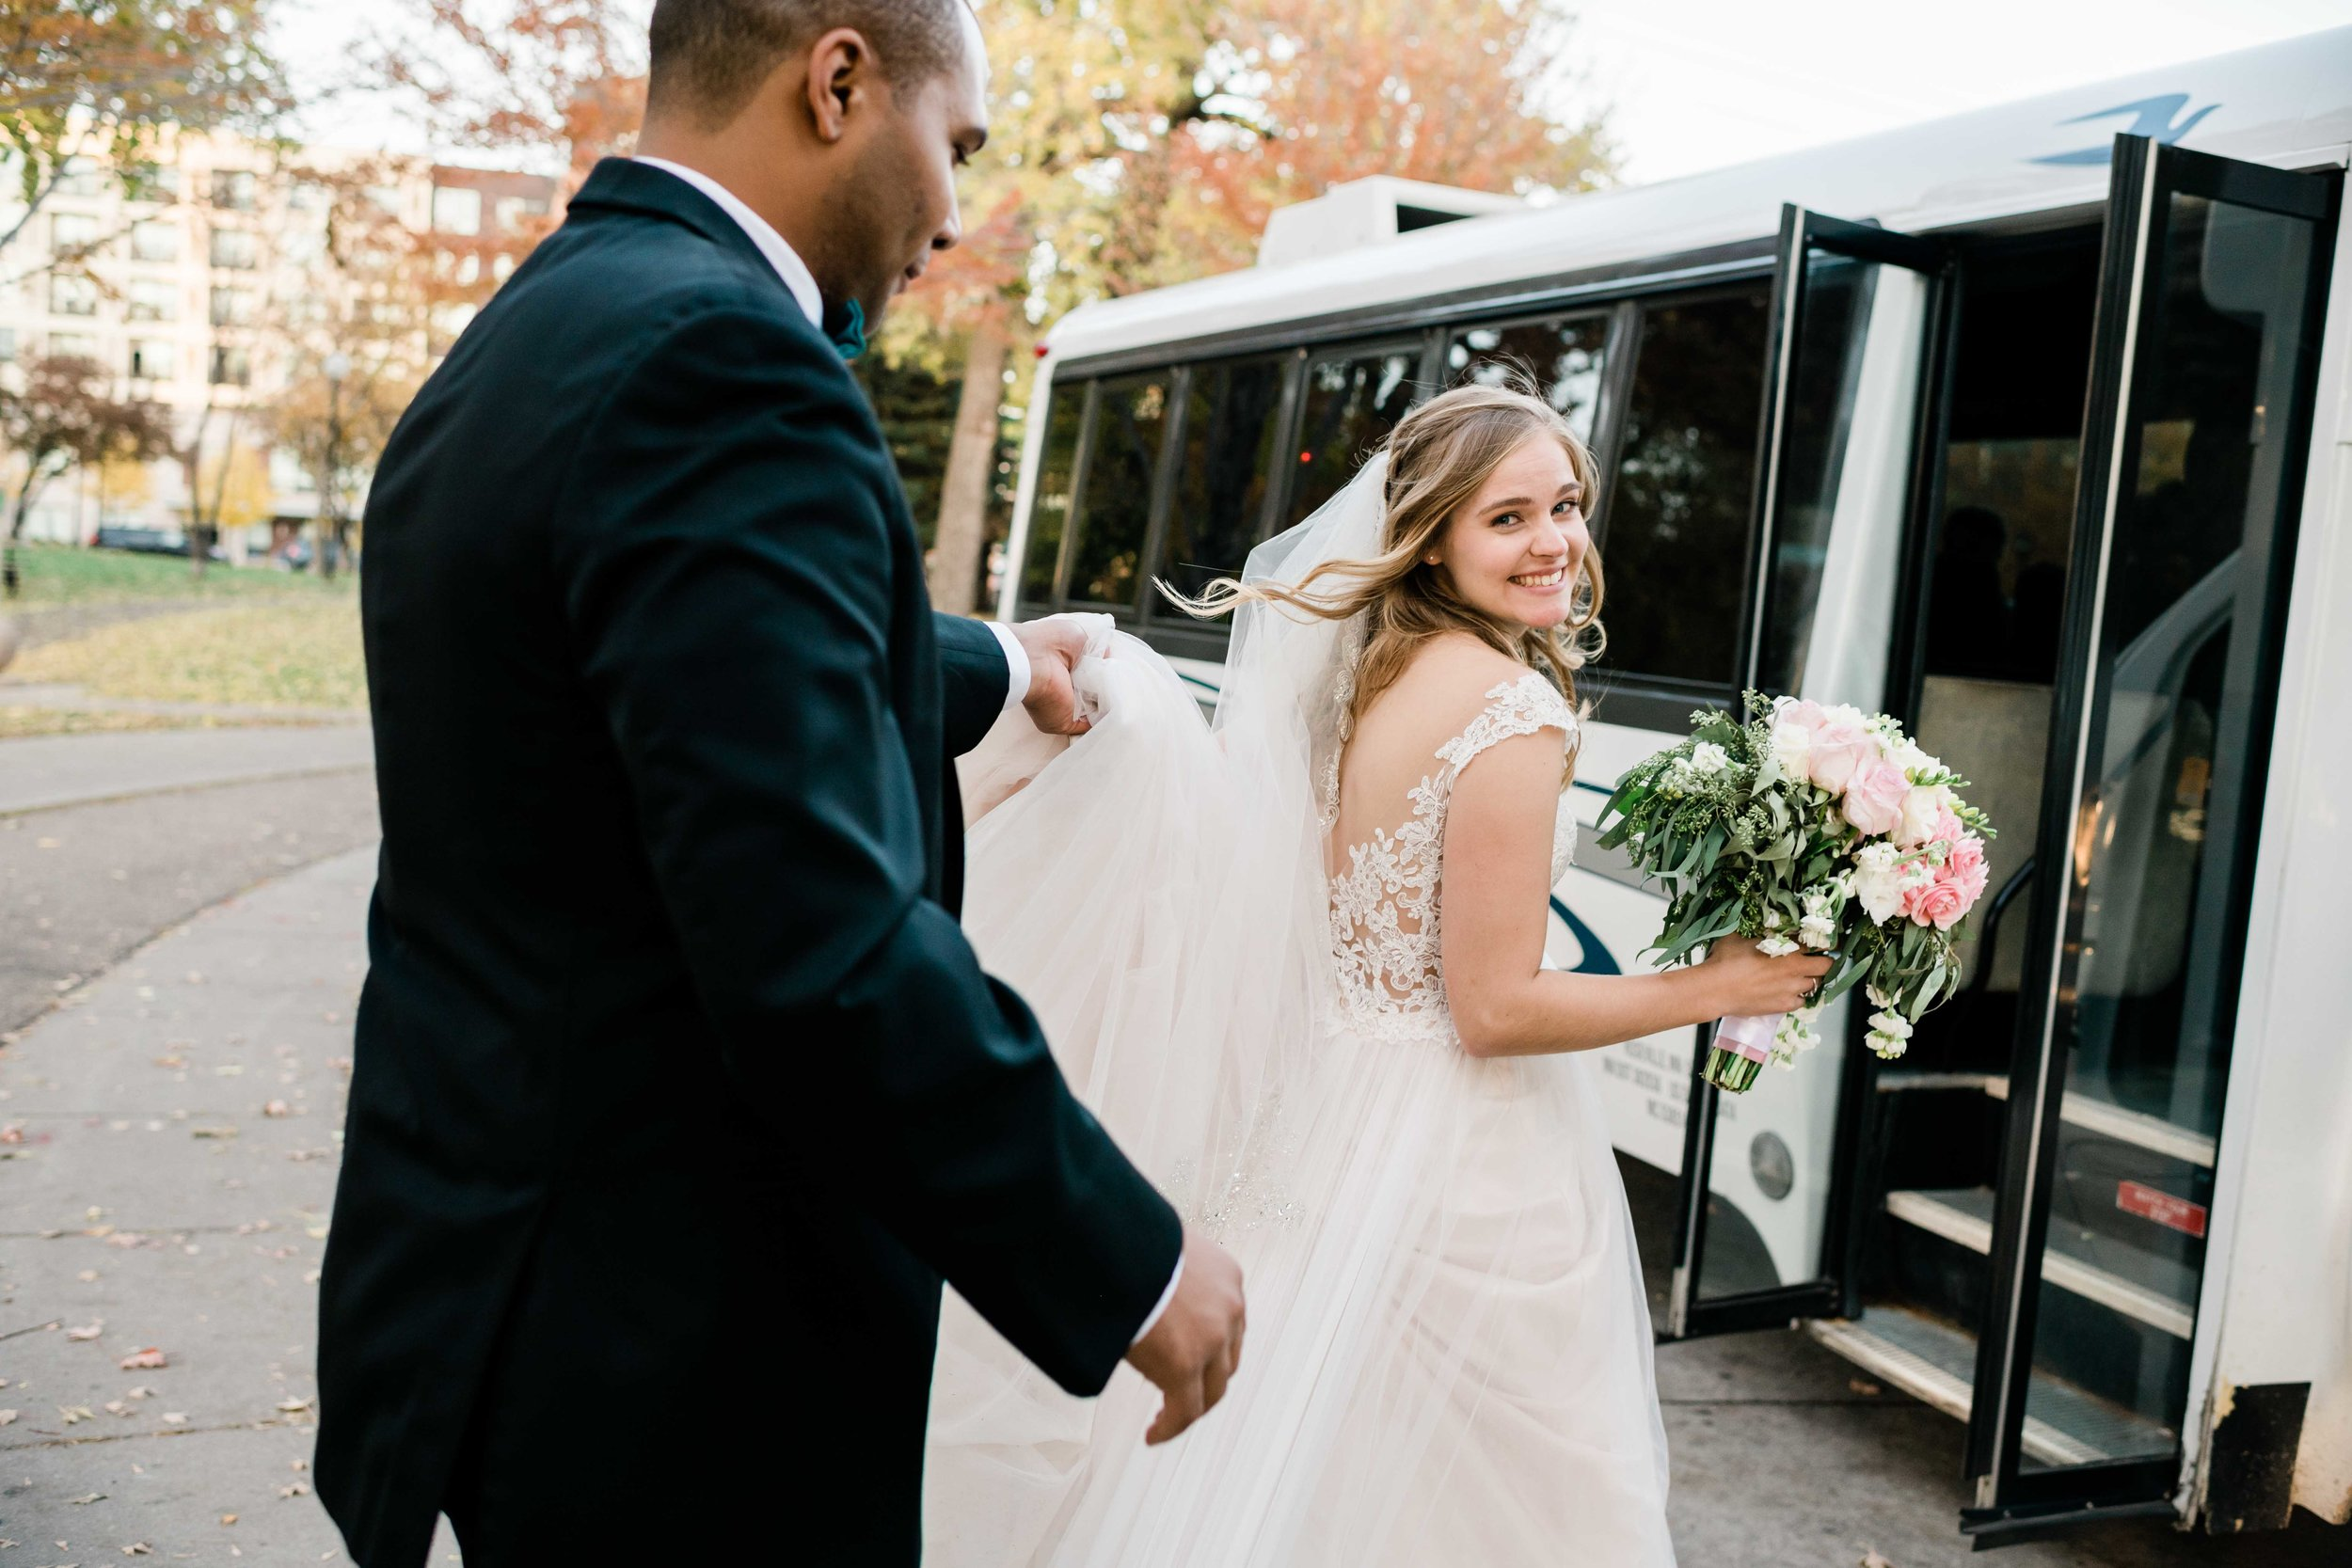 Groom holding up bride's veil as they approach shuttle bus